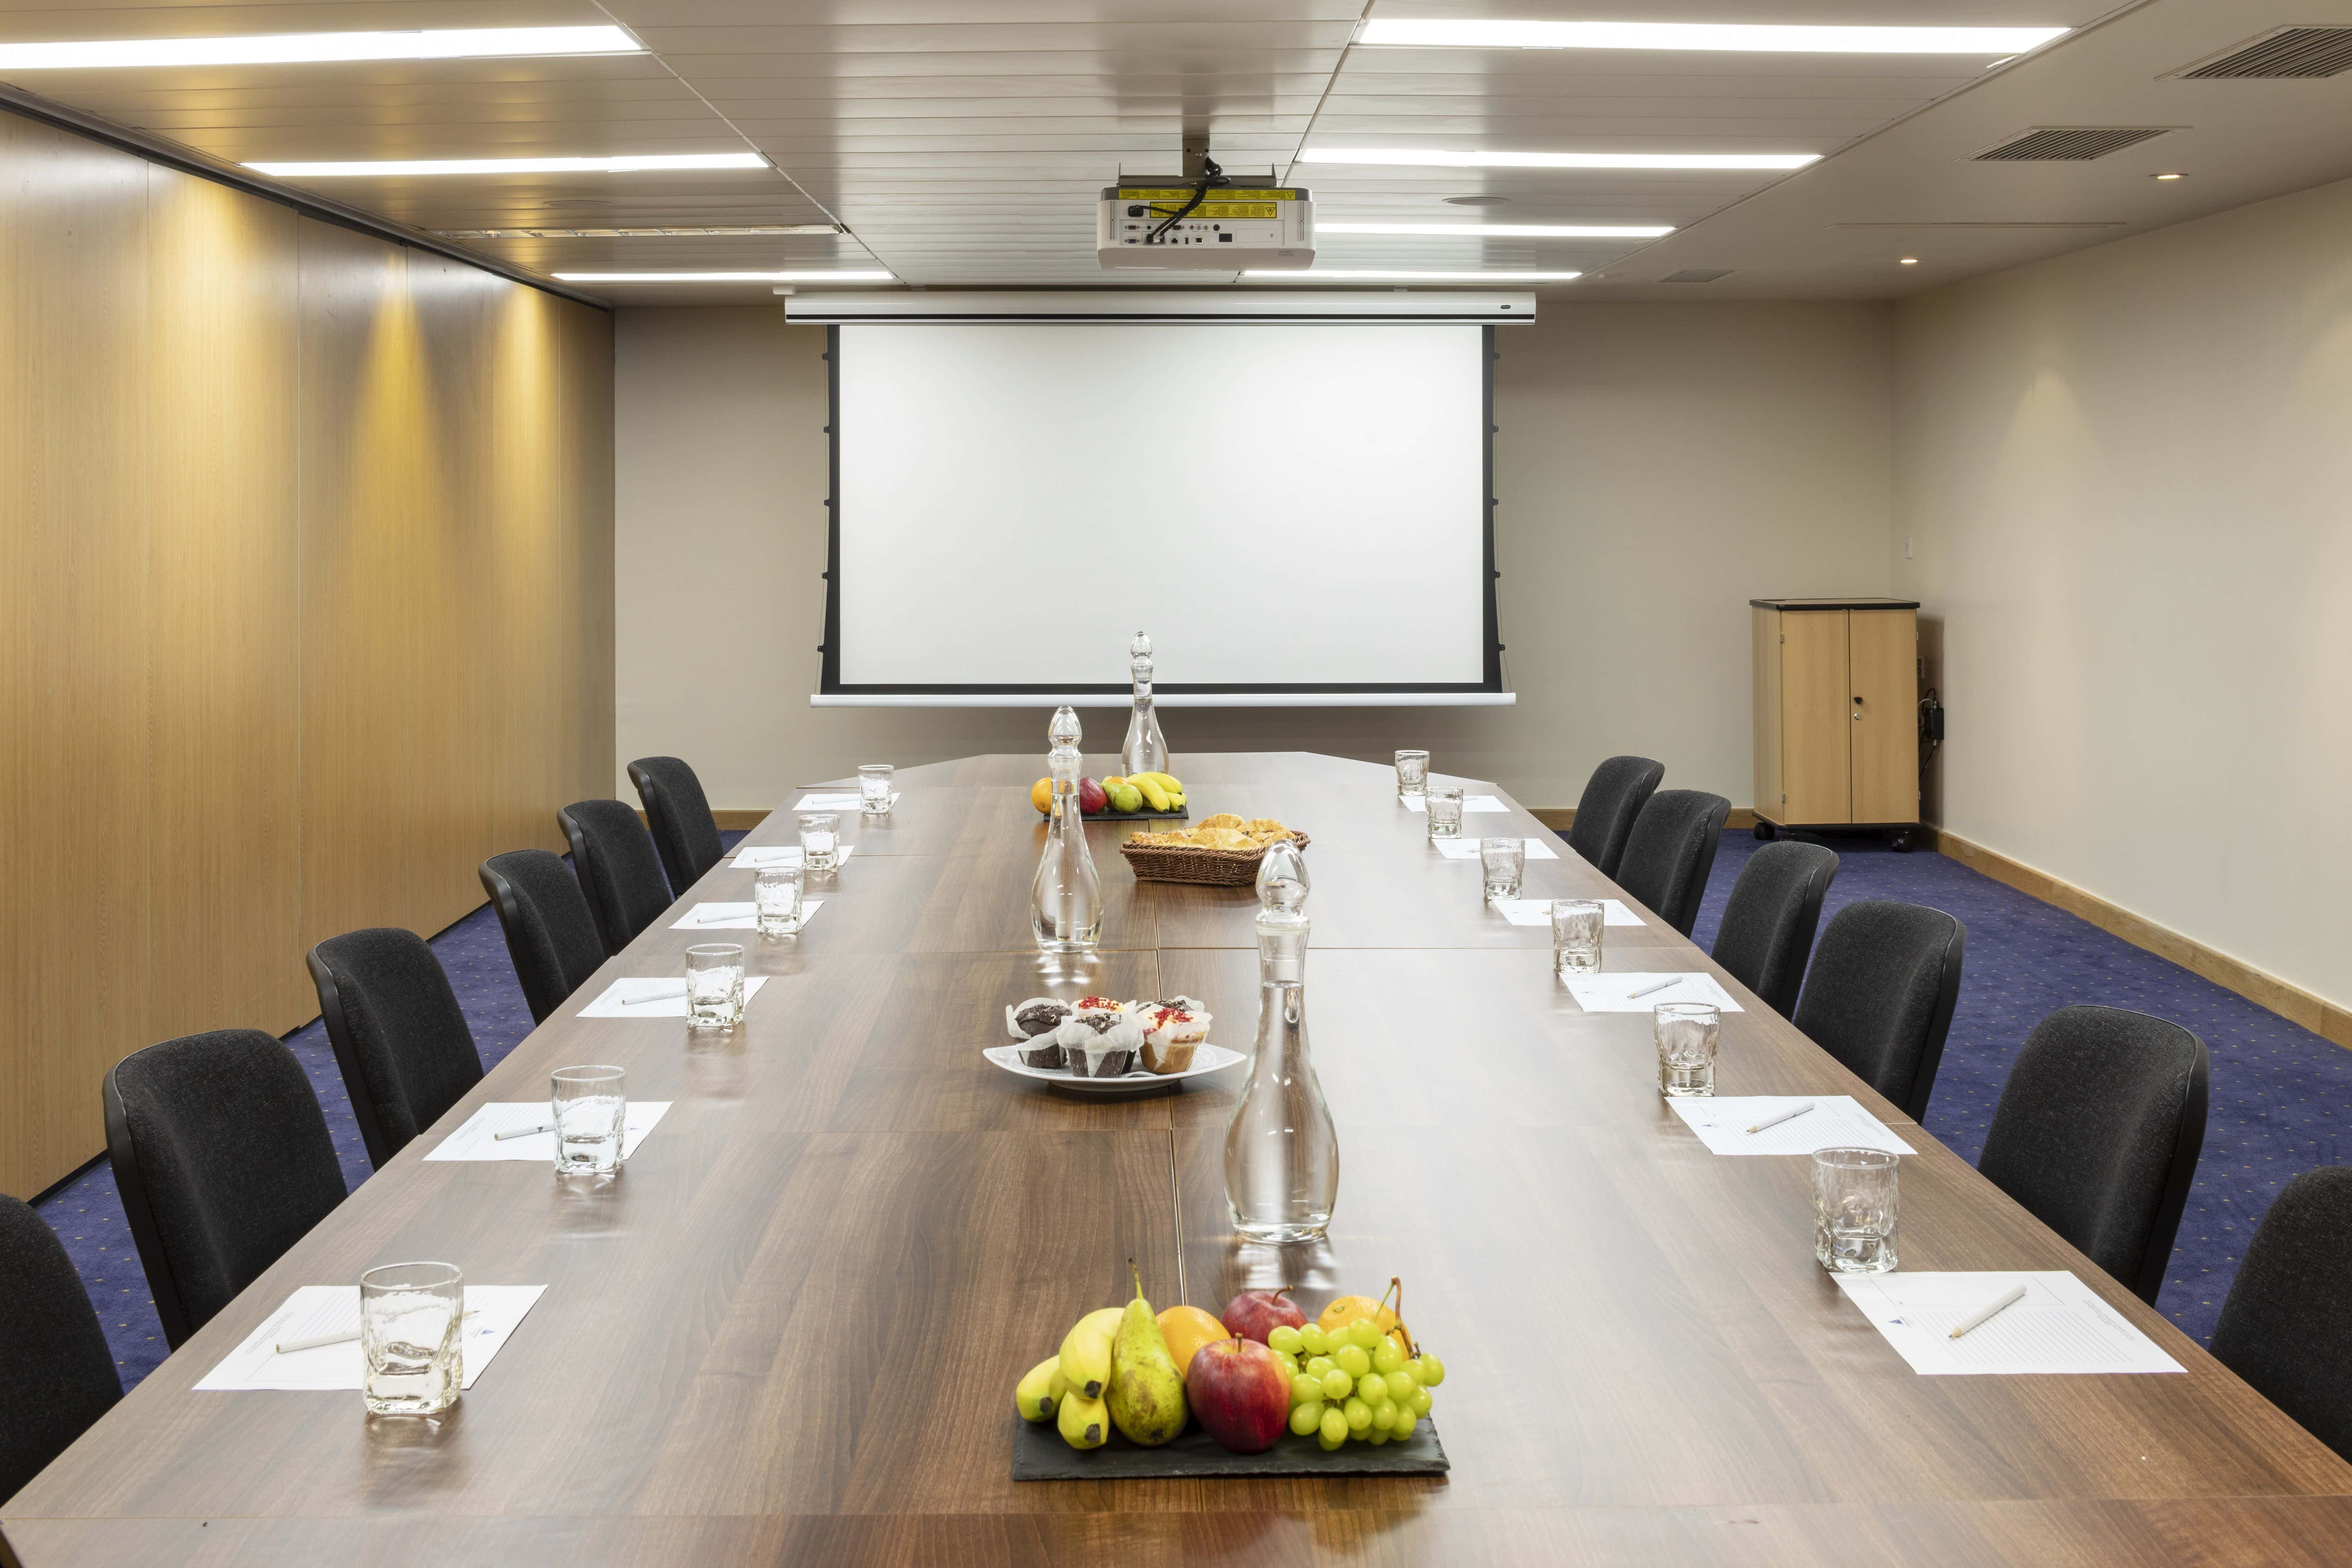 Conference Room 6, St Giles Hotel London